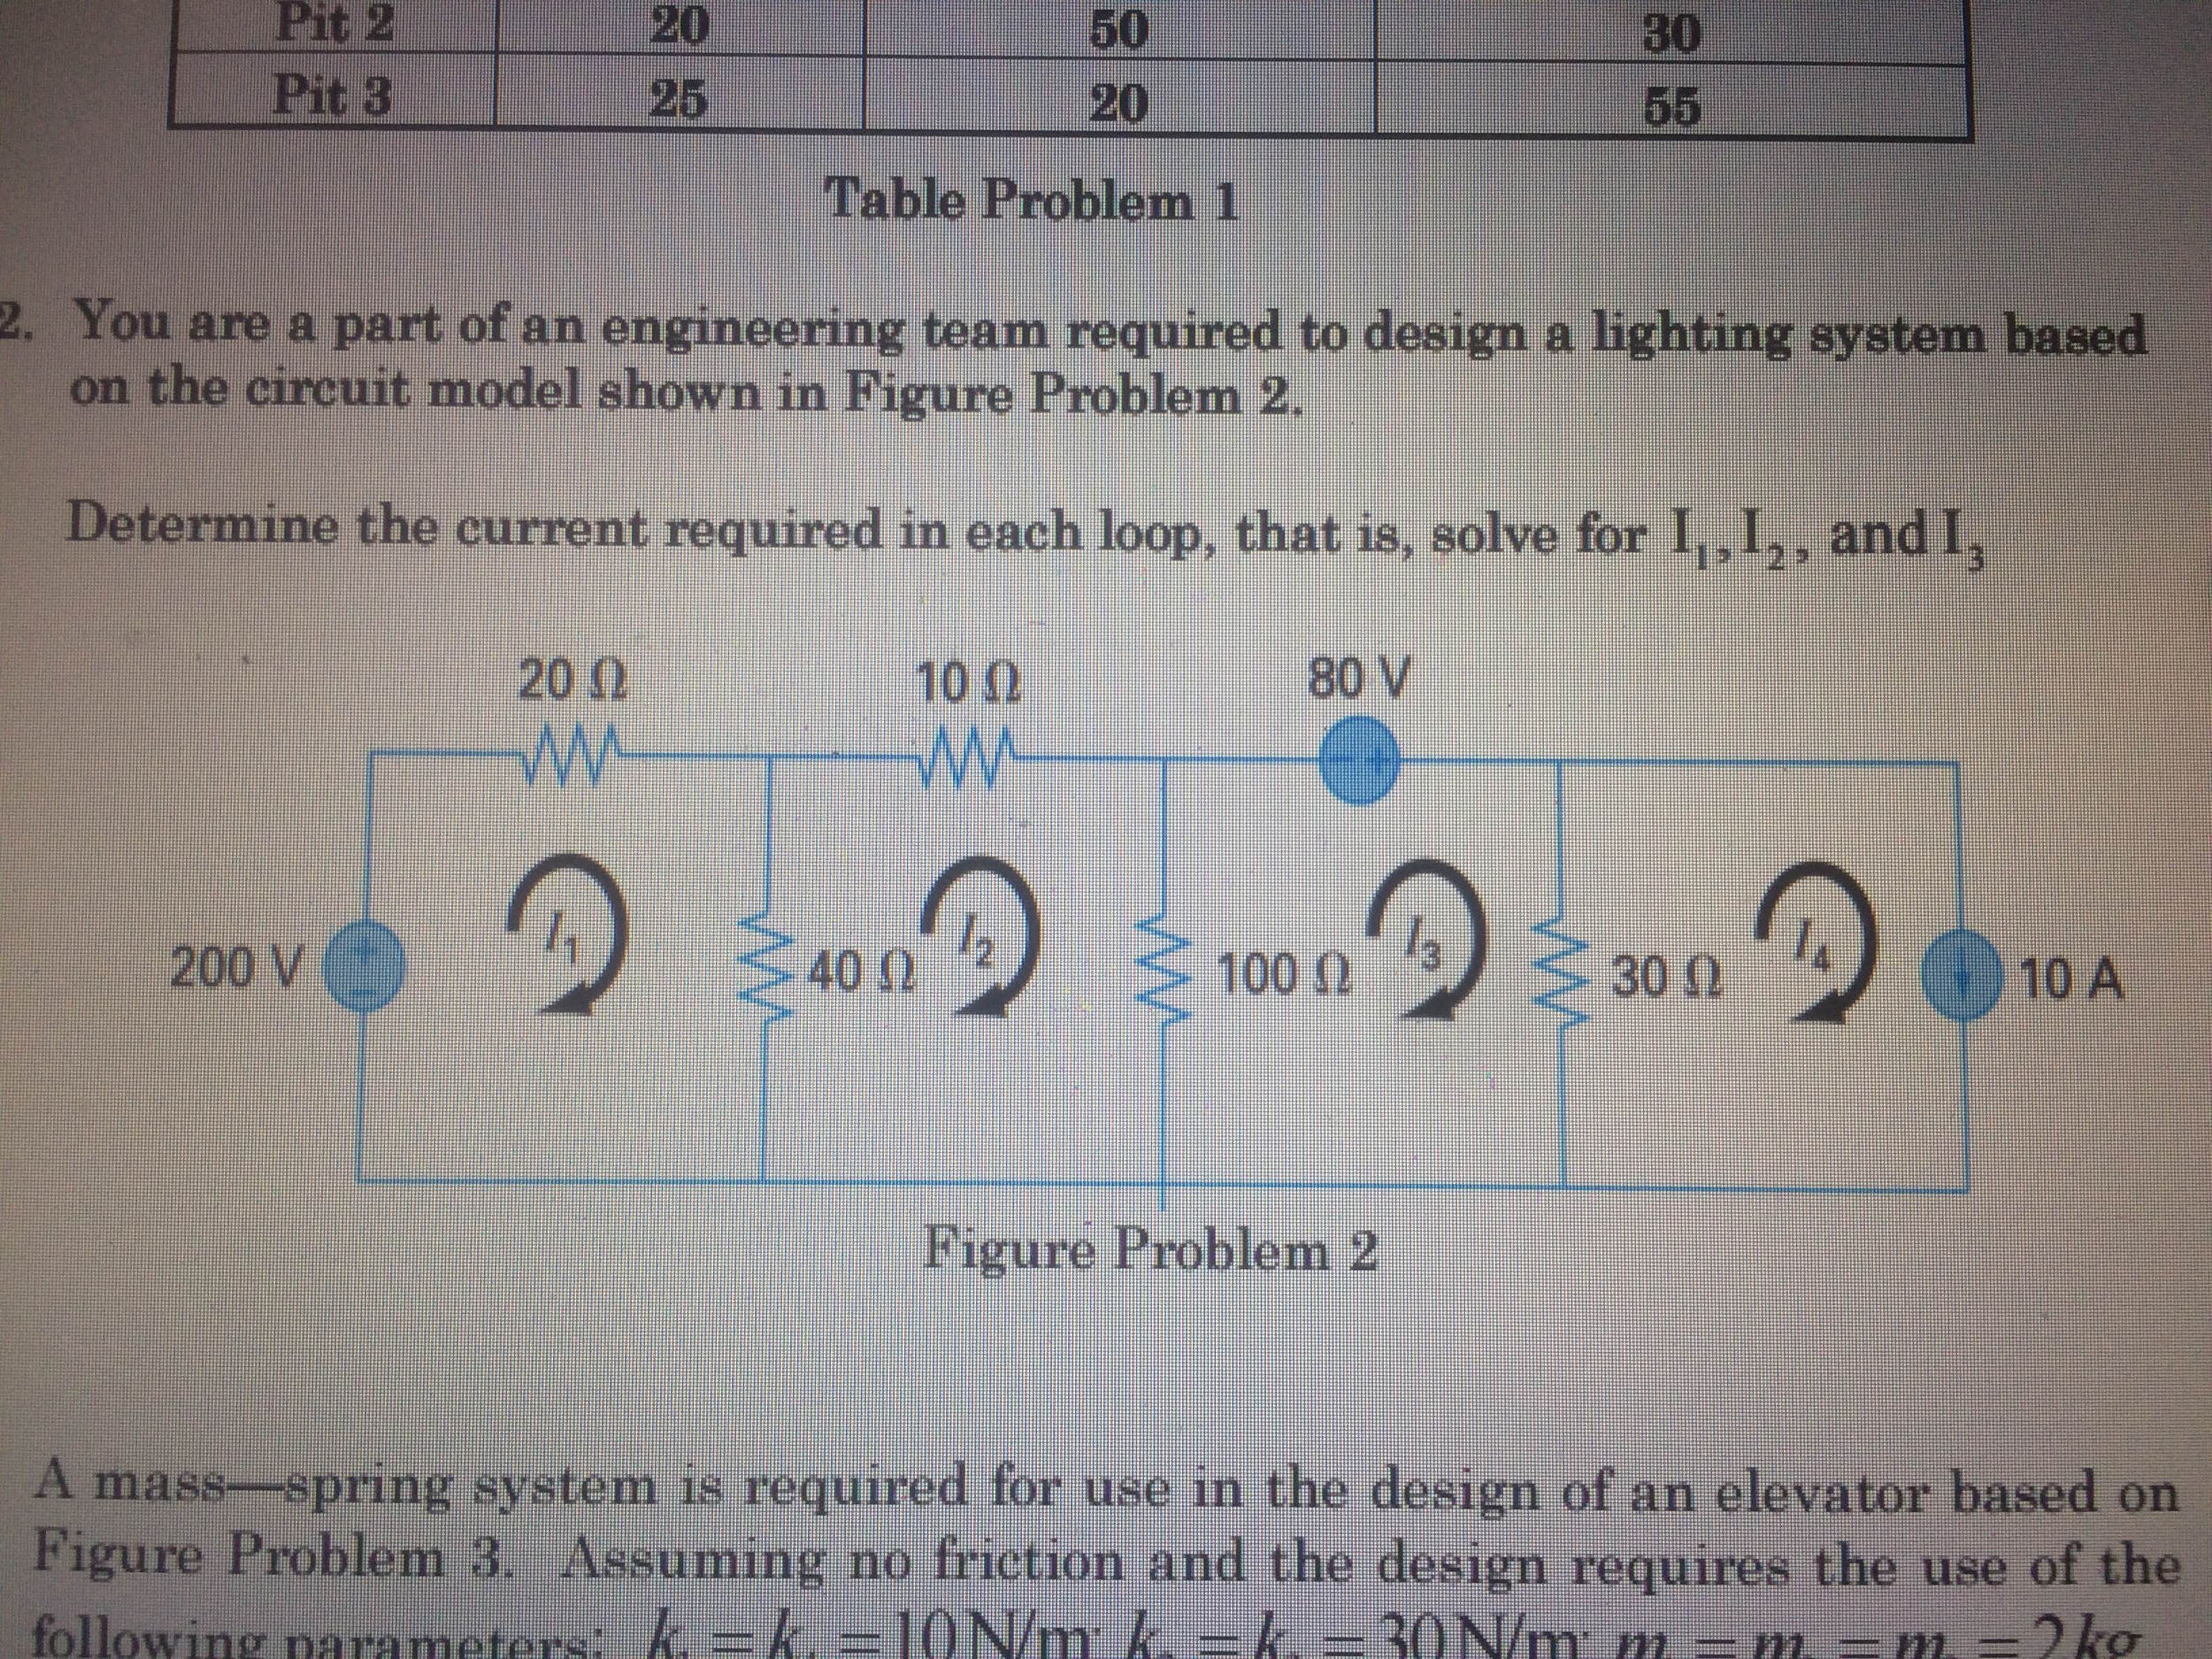 Problems quote question mark background lighting stock